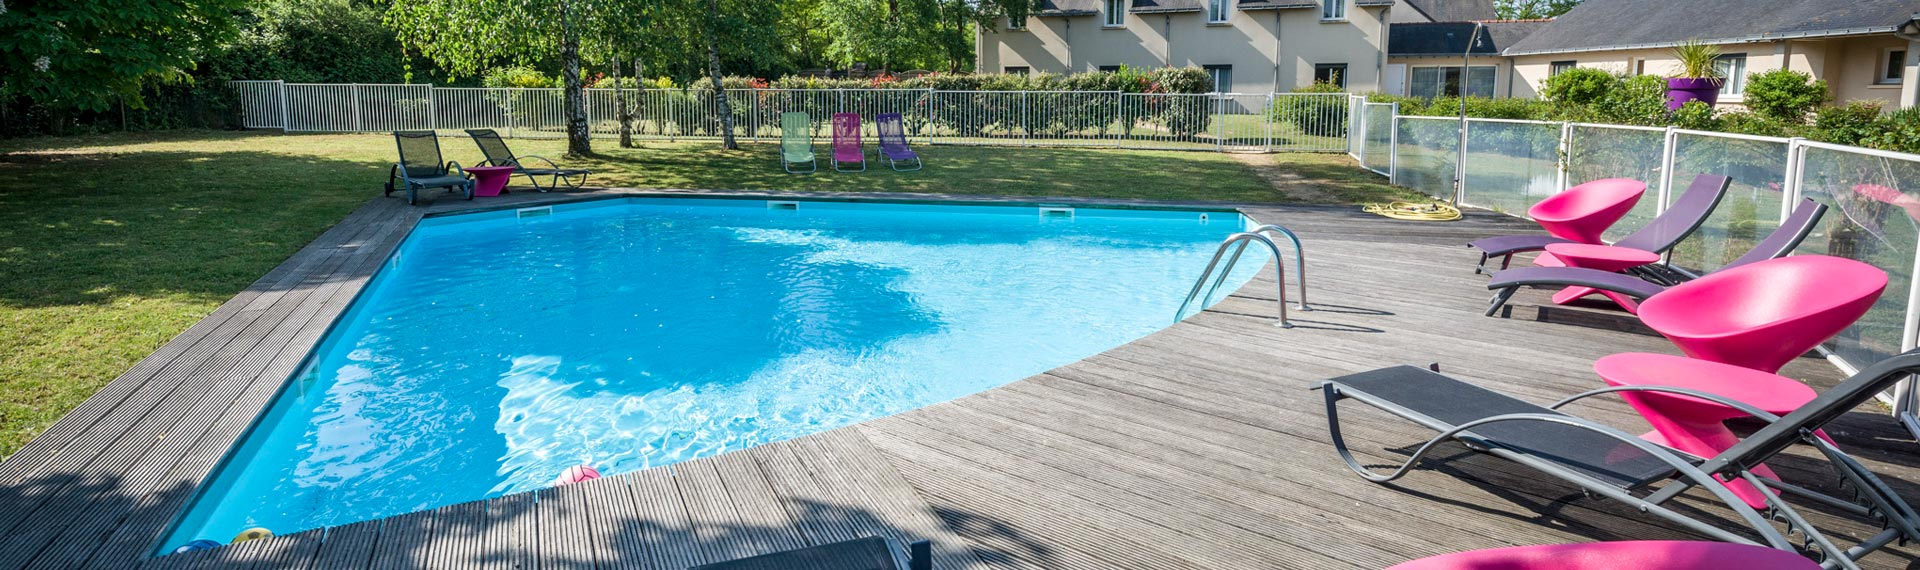 Loire piscine jardin 40 ans d 39 exp rience cr ation for Piscine jardin